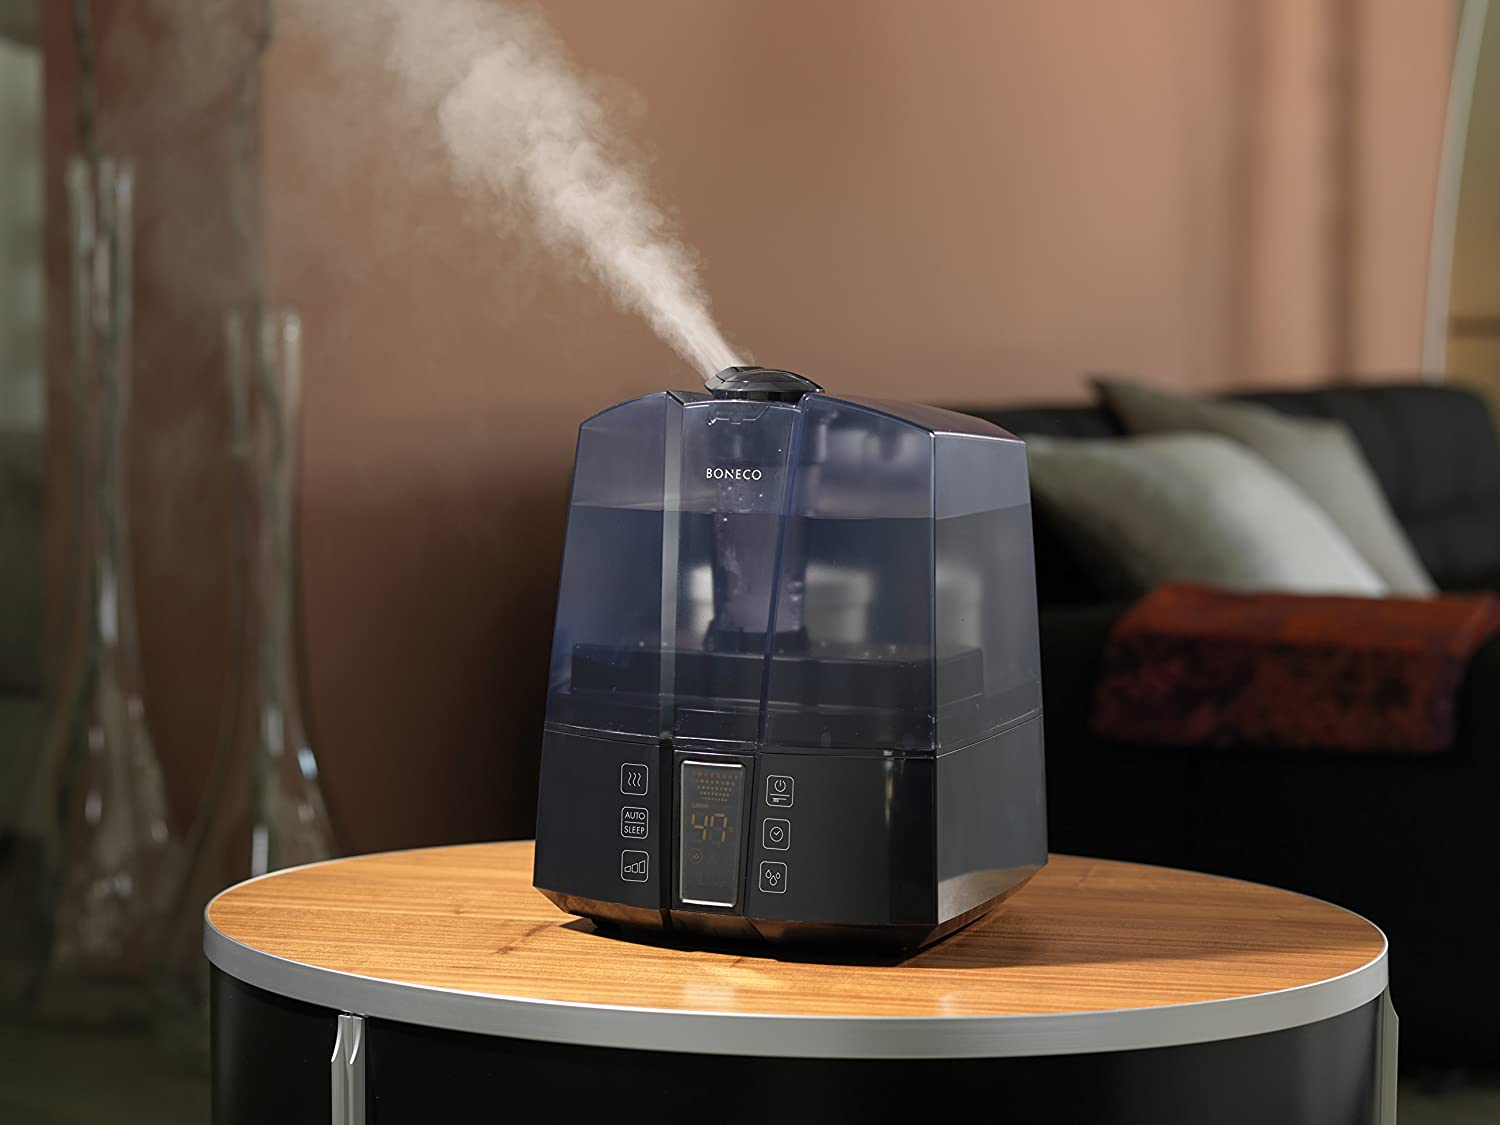 BONECO/Air-O-Swiss Warm or Cool Mist Ultrasonic Humidifier 7147